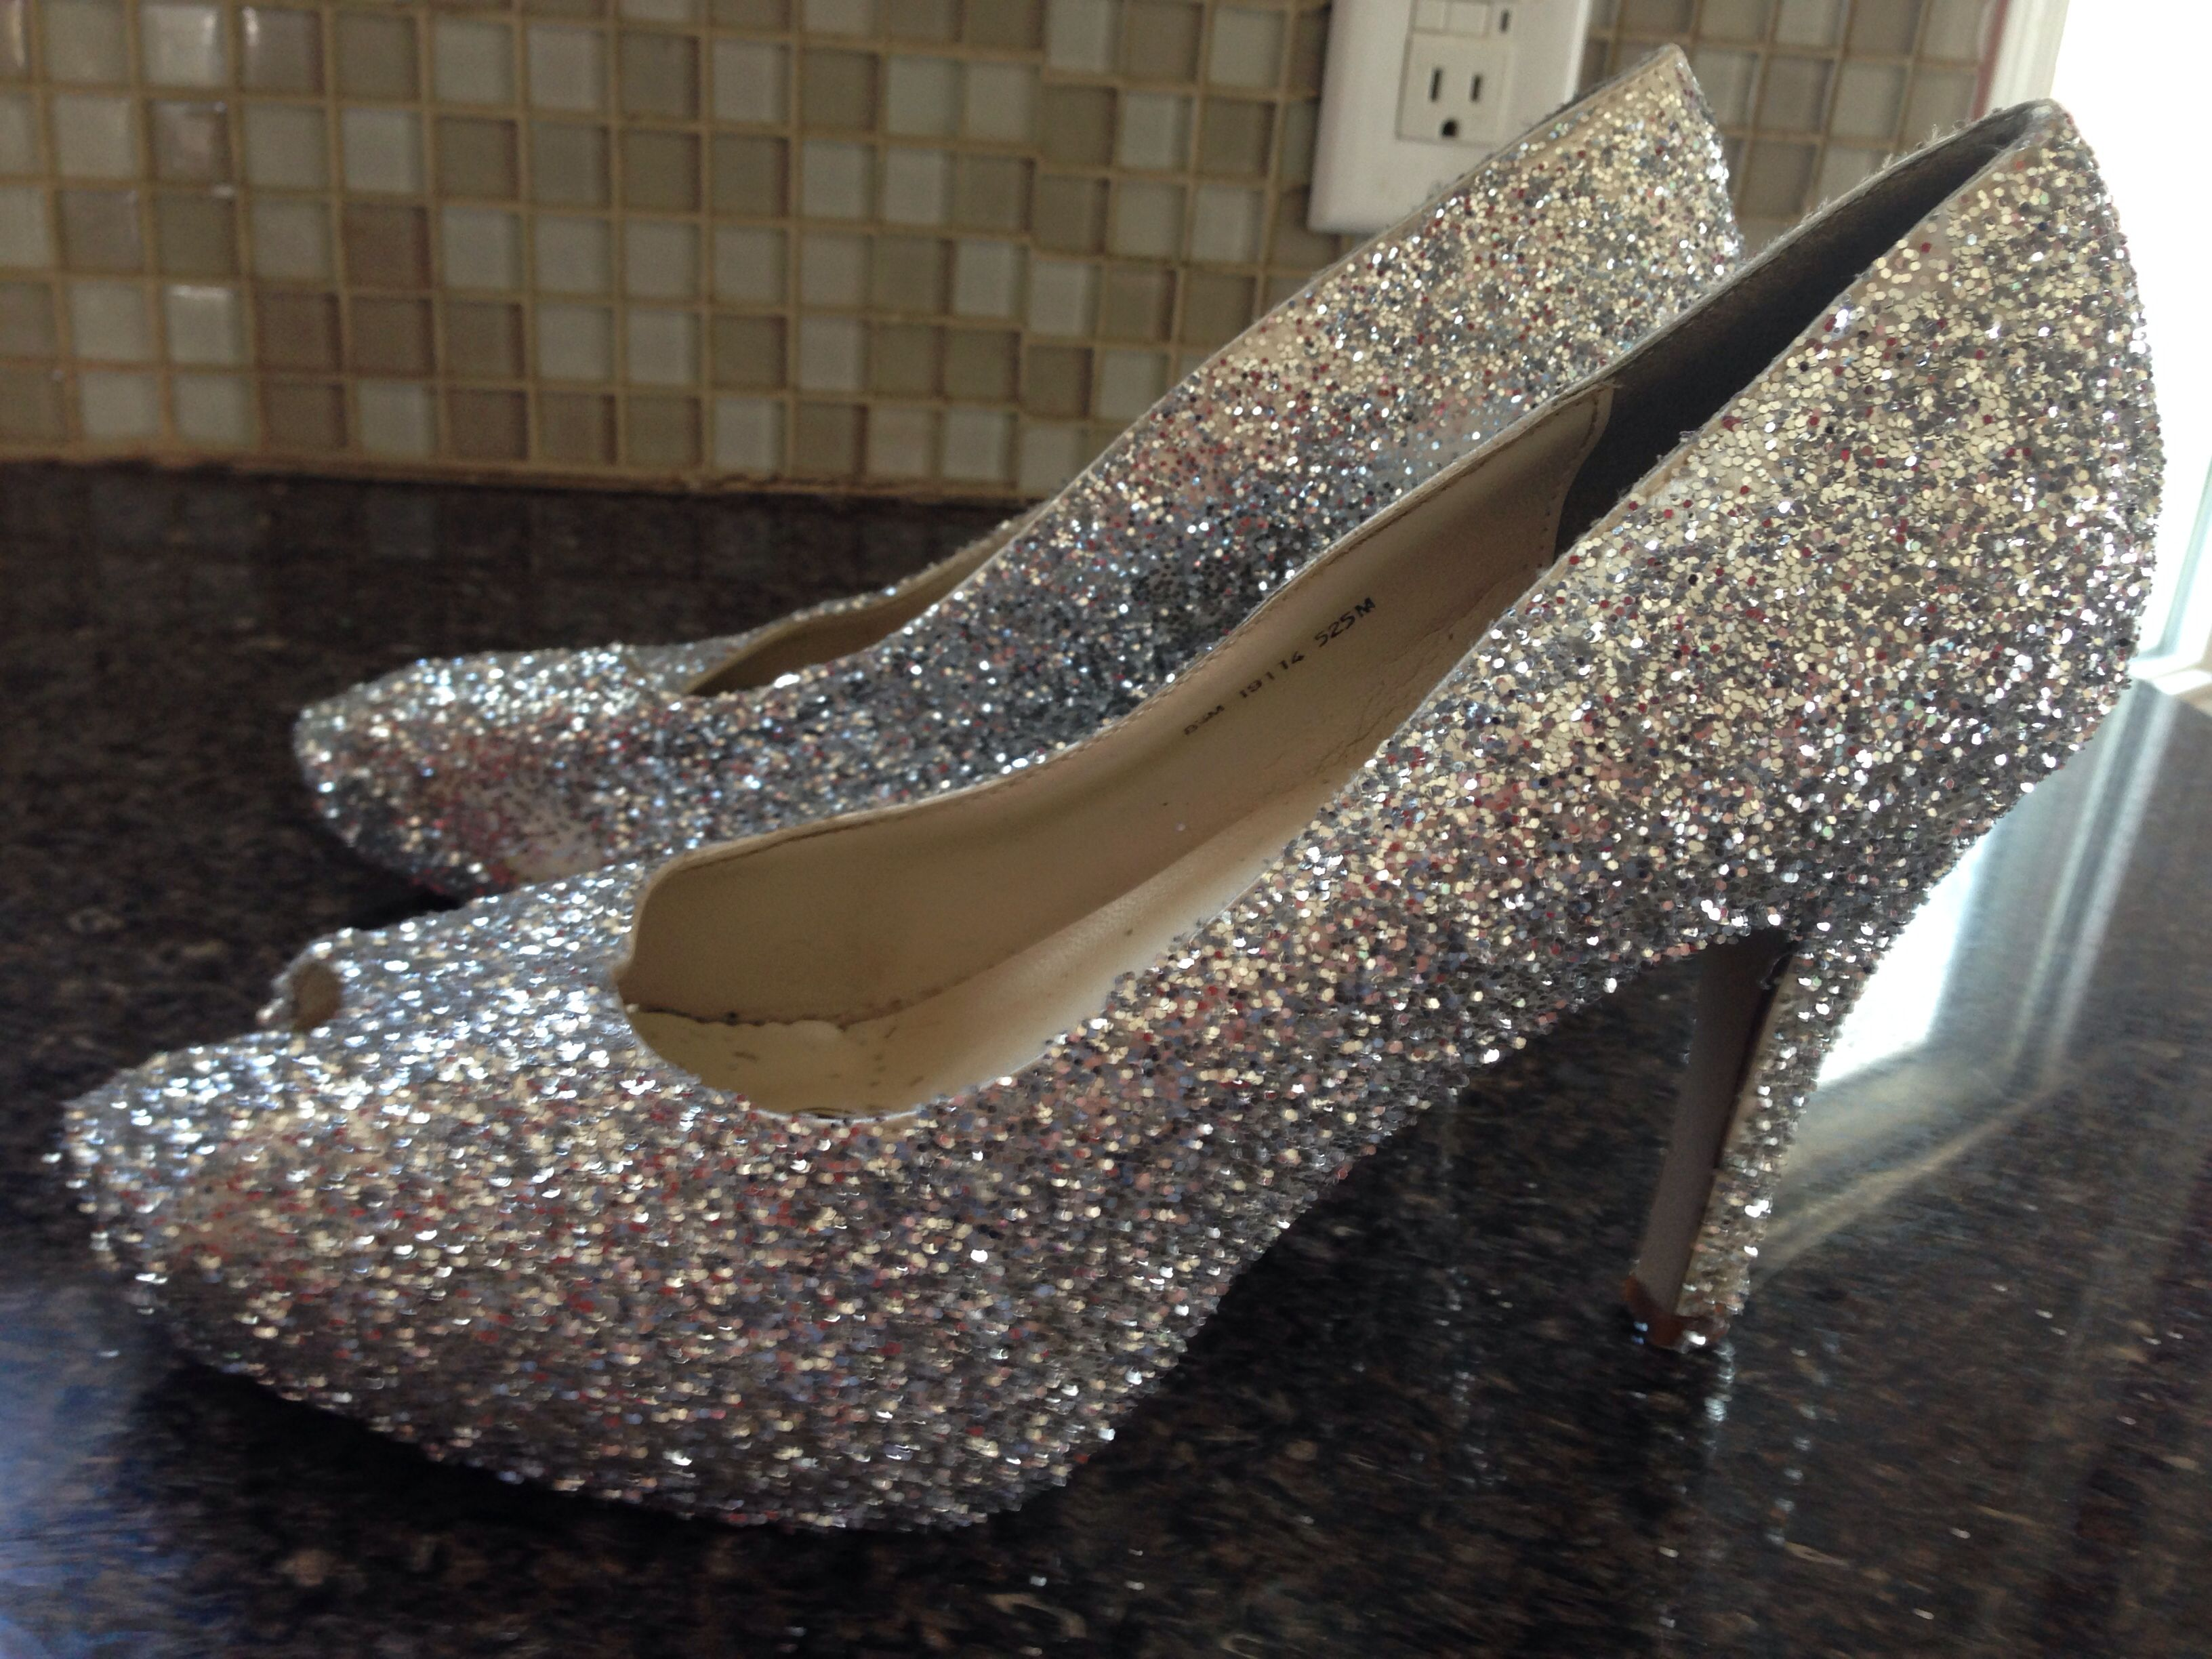 Pin Gold Glitter Shoes on Pinterest | Gold glitter shoes